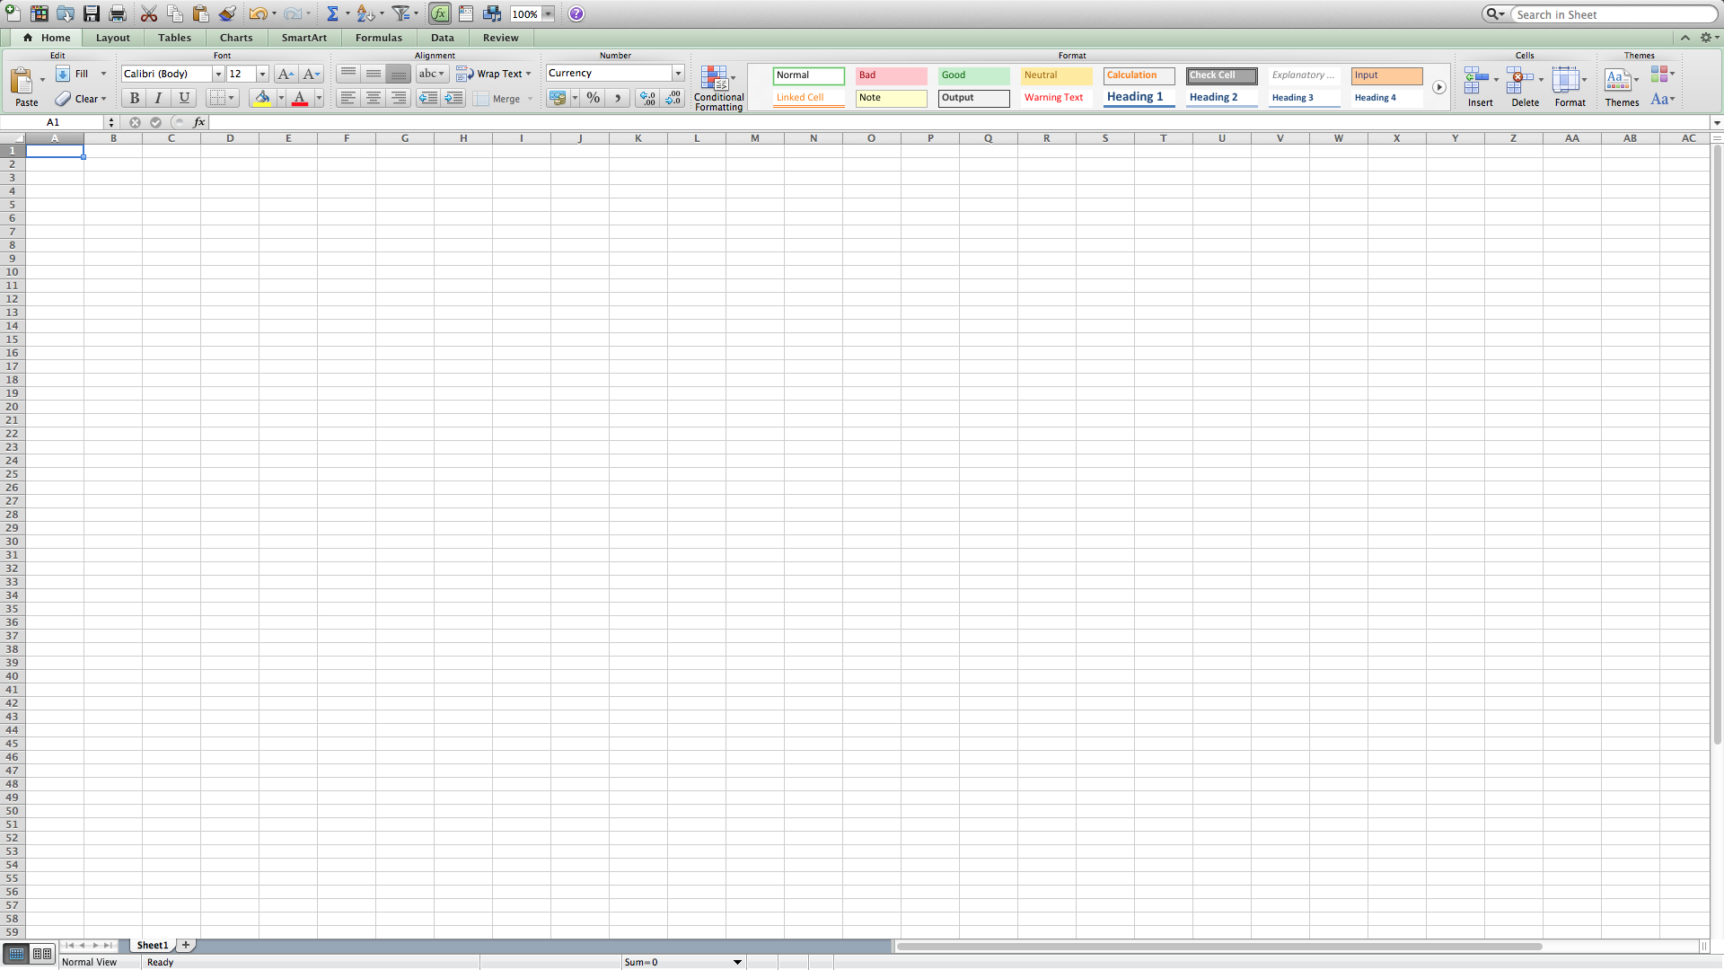 Excel Spreadsheet Jobs From Home Intended For Excel Skills Increasingly Soughtafteremployers  Fortune